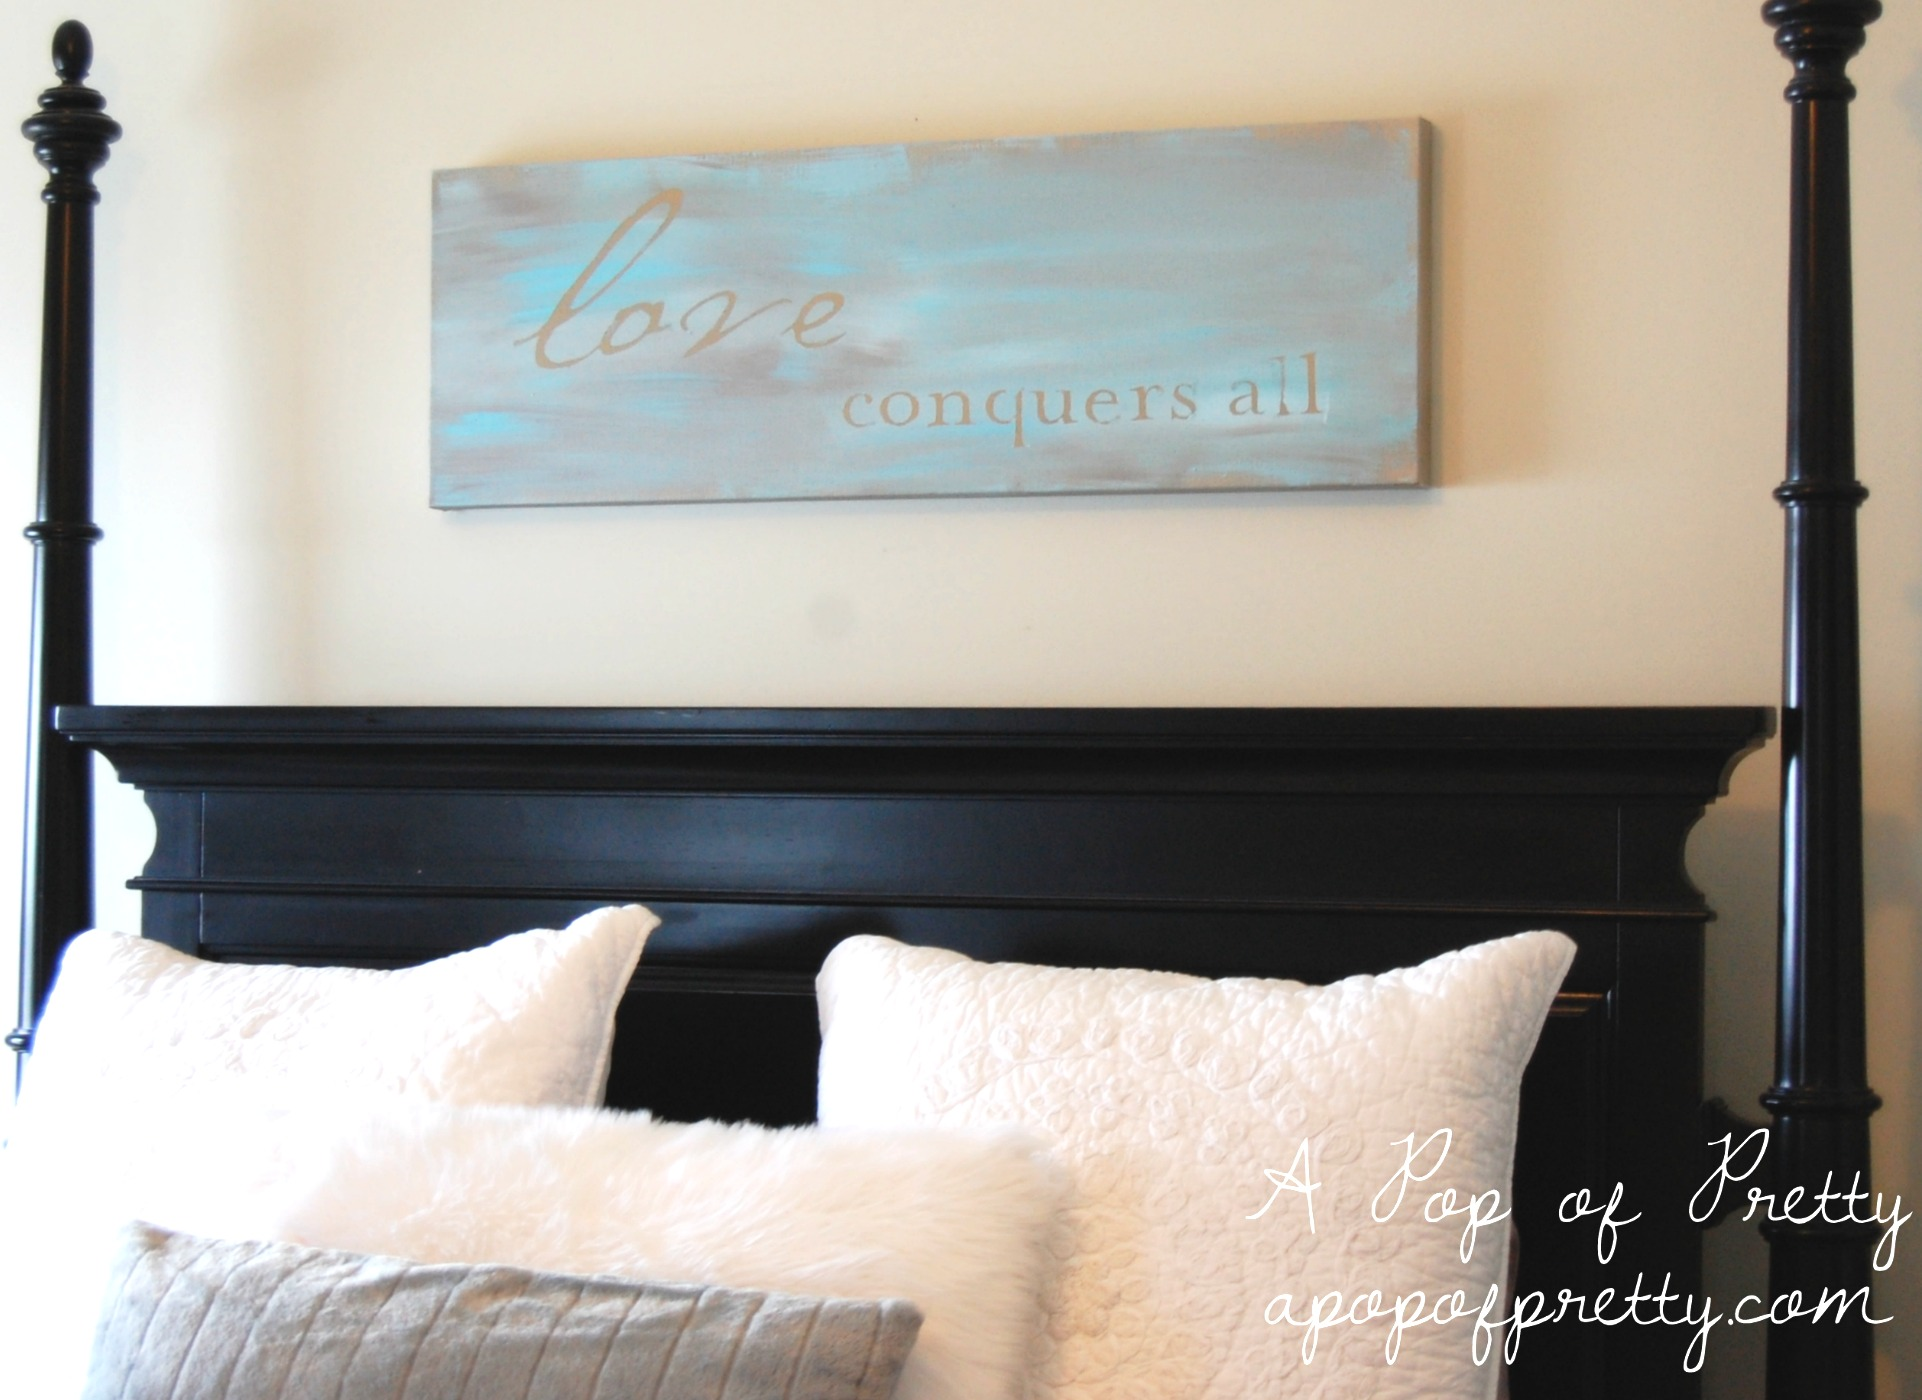 Diy Canvas Wall Art Quotes Diy Wall Art Painted Canvas A Pop Of Pretty Blog